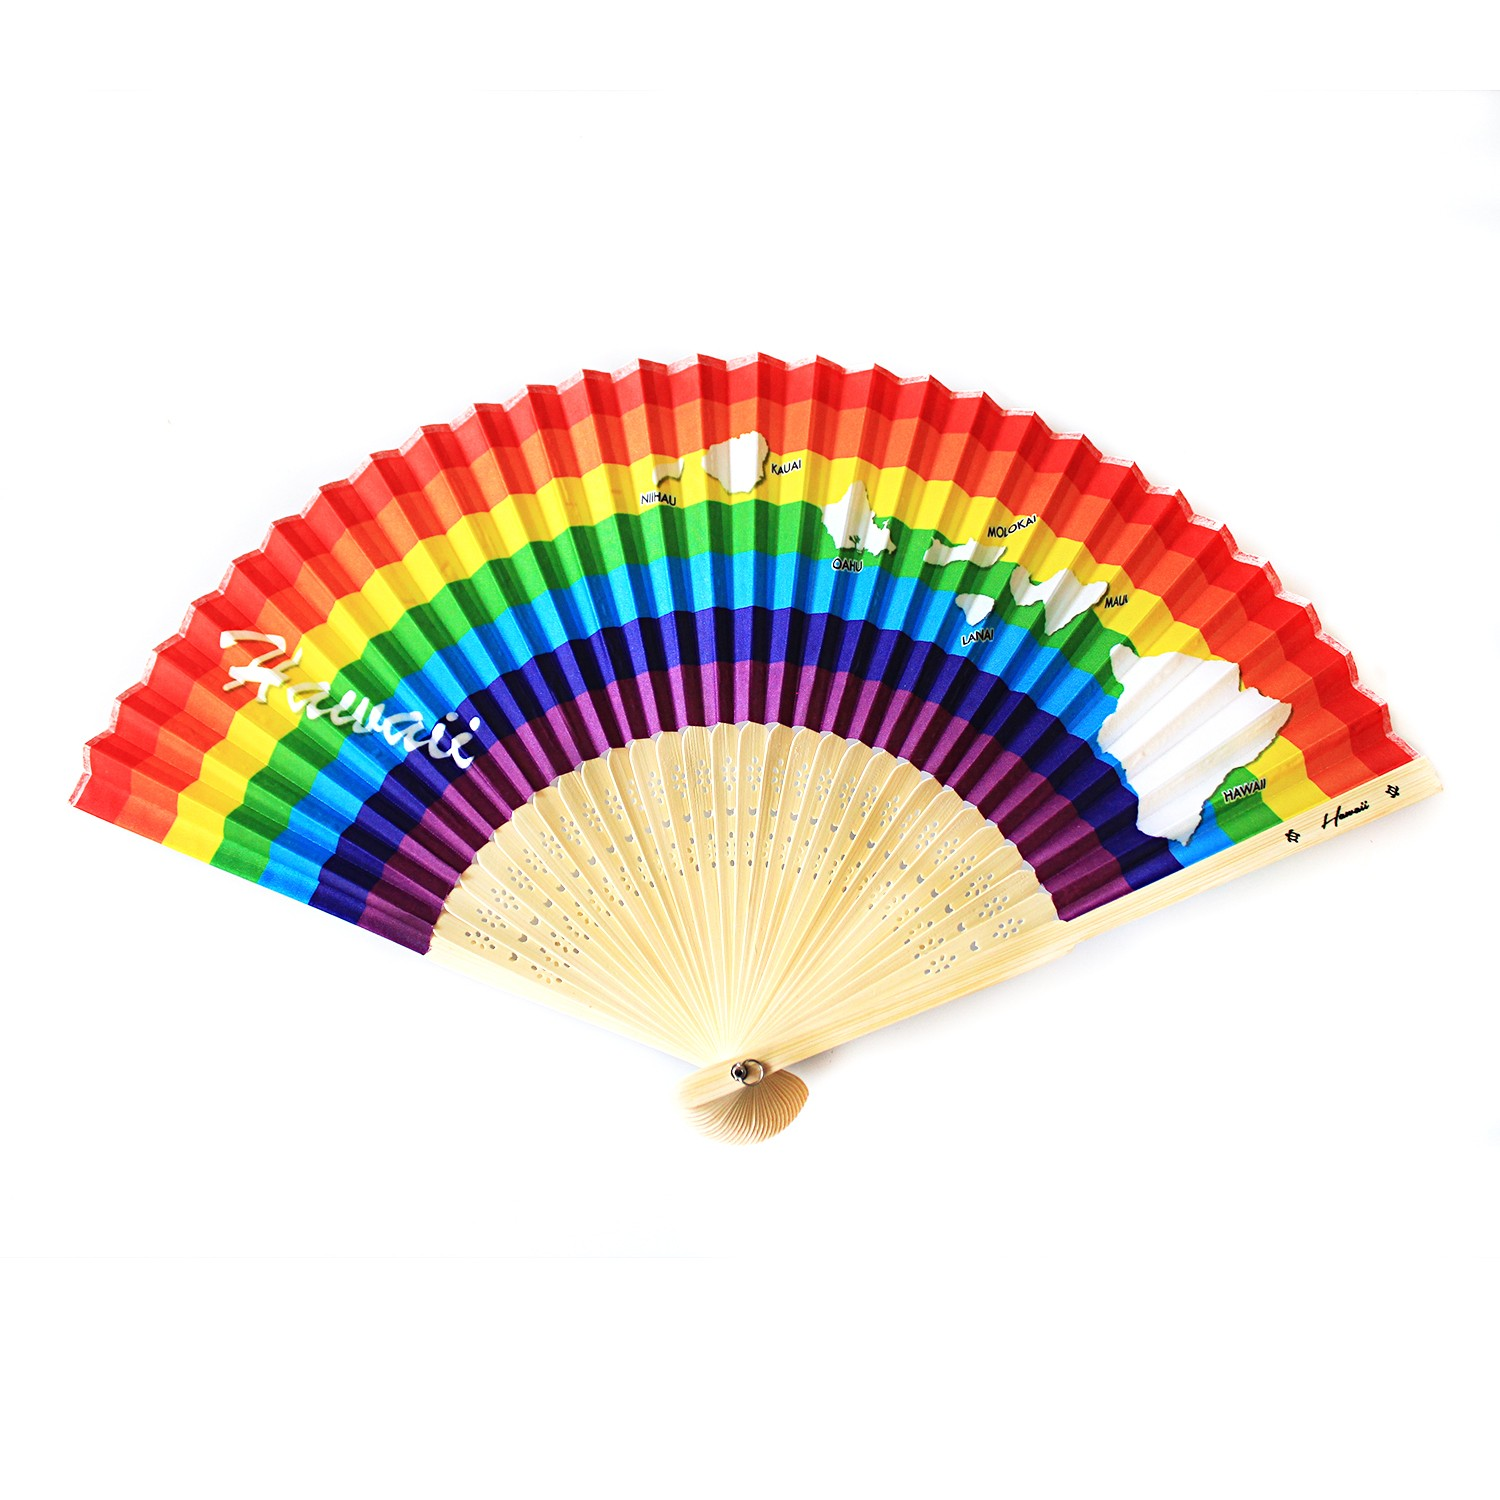 Hawaii Luau Party Favors Wedding Fabric & Wood Folding Hand Fan in Rainbow Map